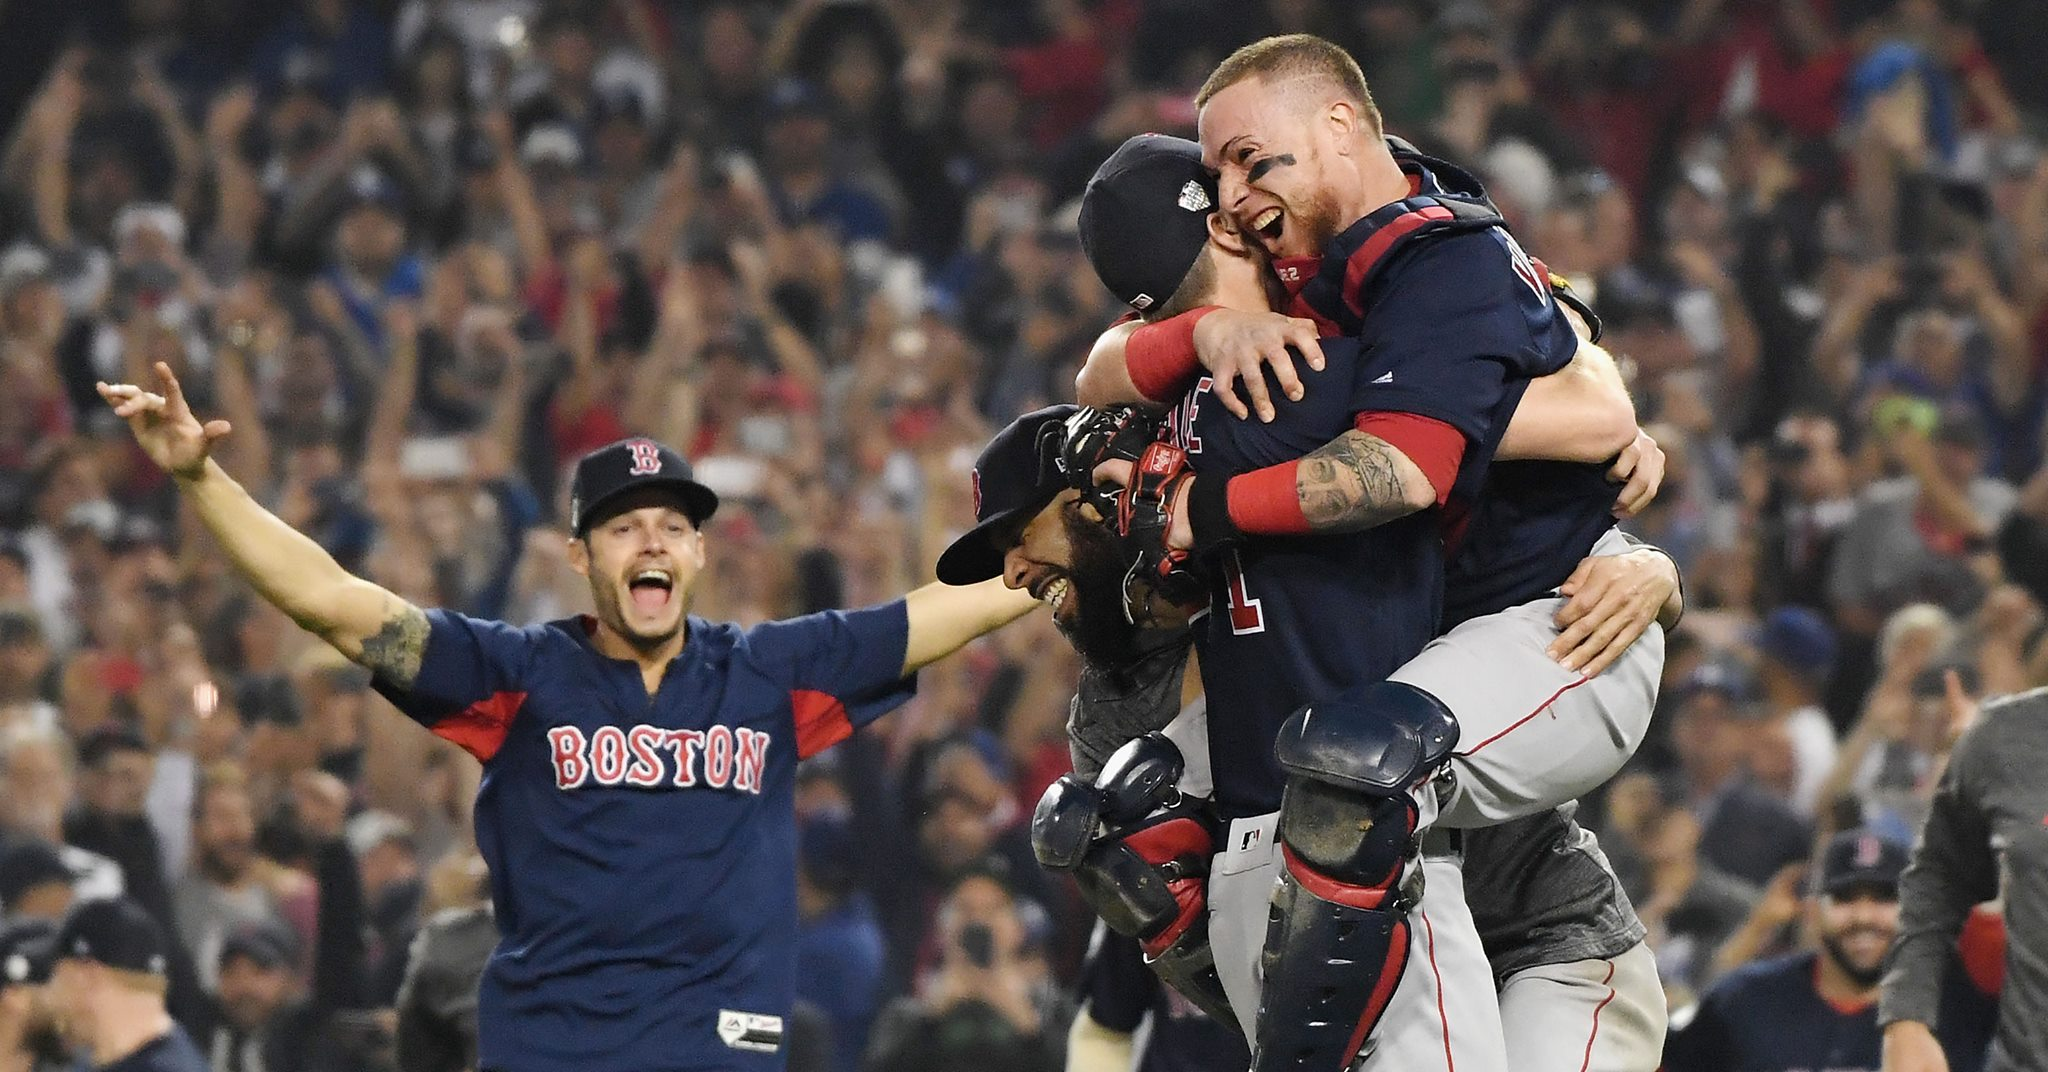 The Boston Red Sox are Your 2018 World Series Champions